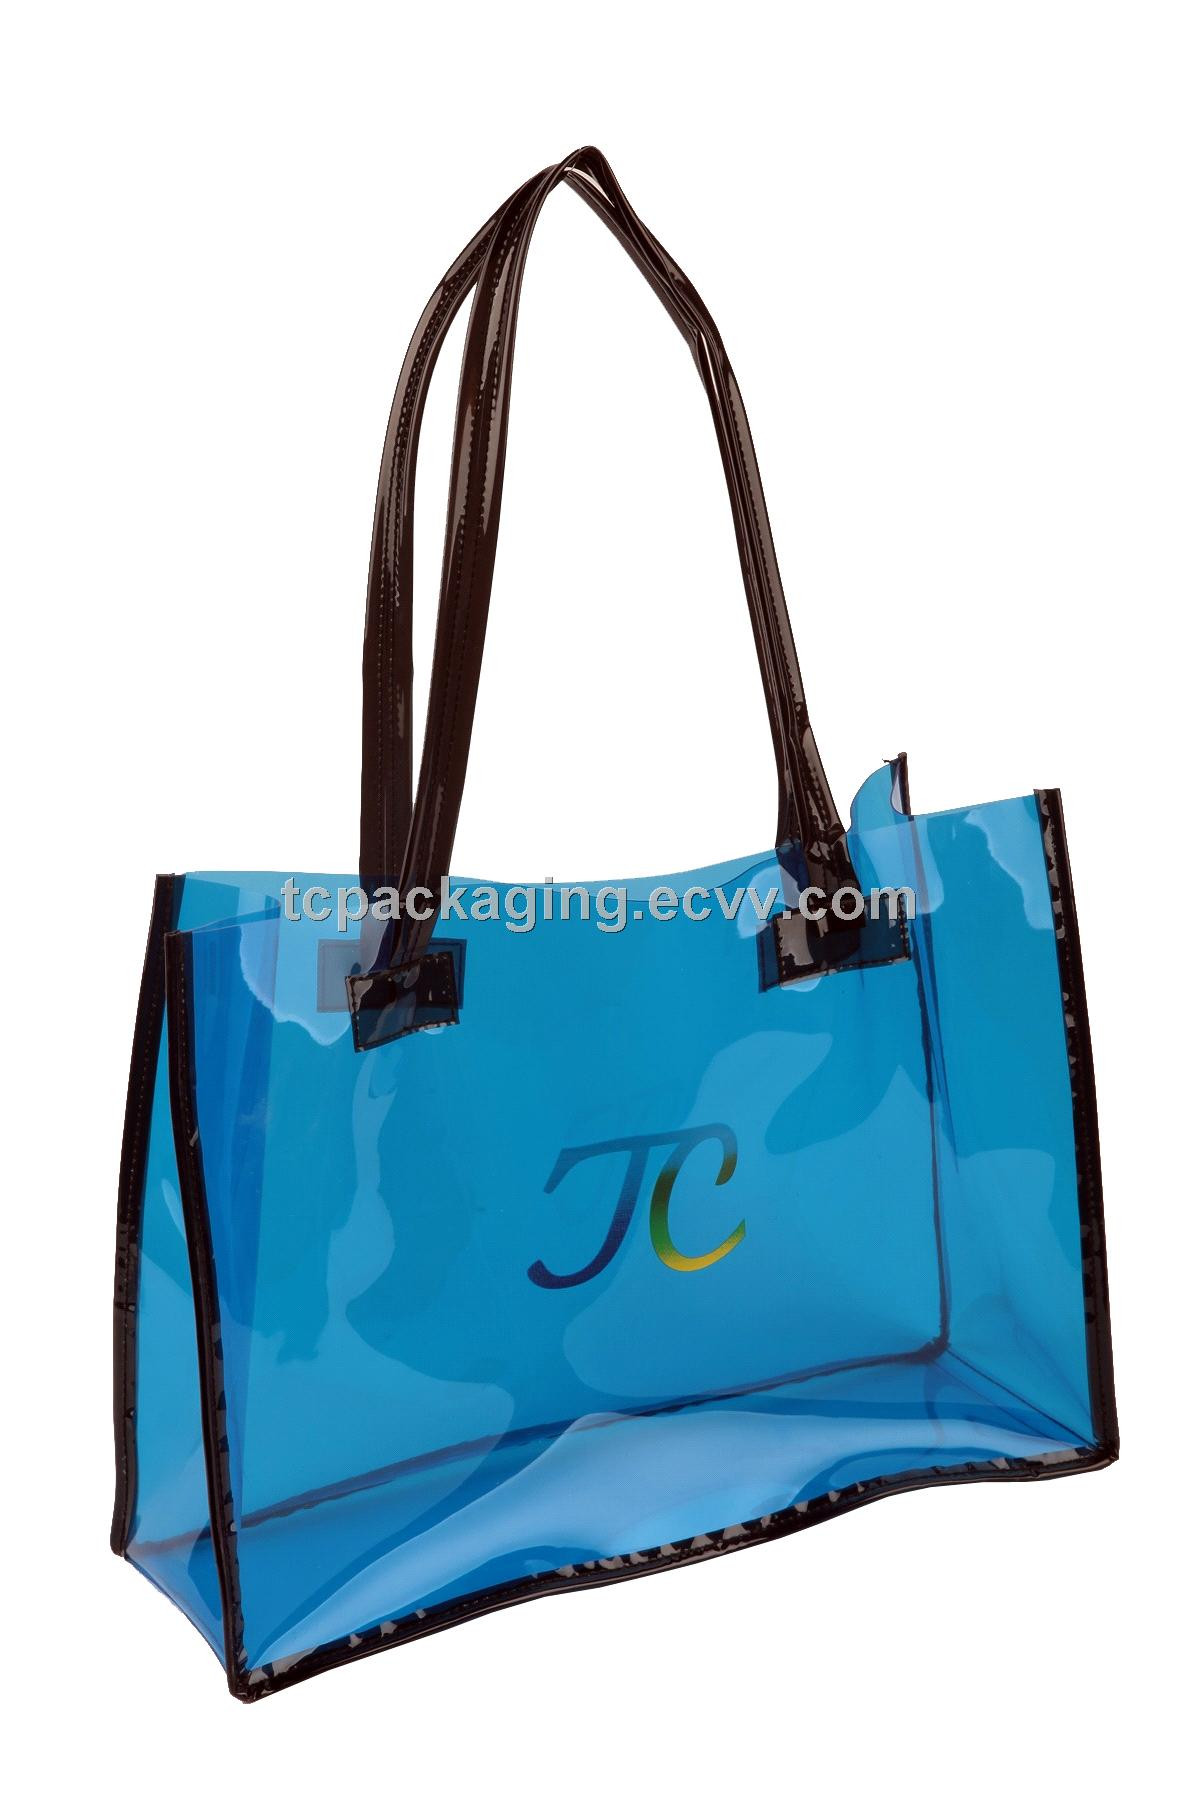 New Listing,Hot Sale,Plastic PVC Bag for Various Usages